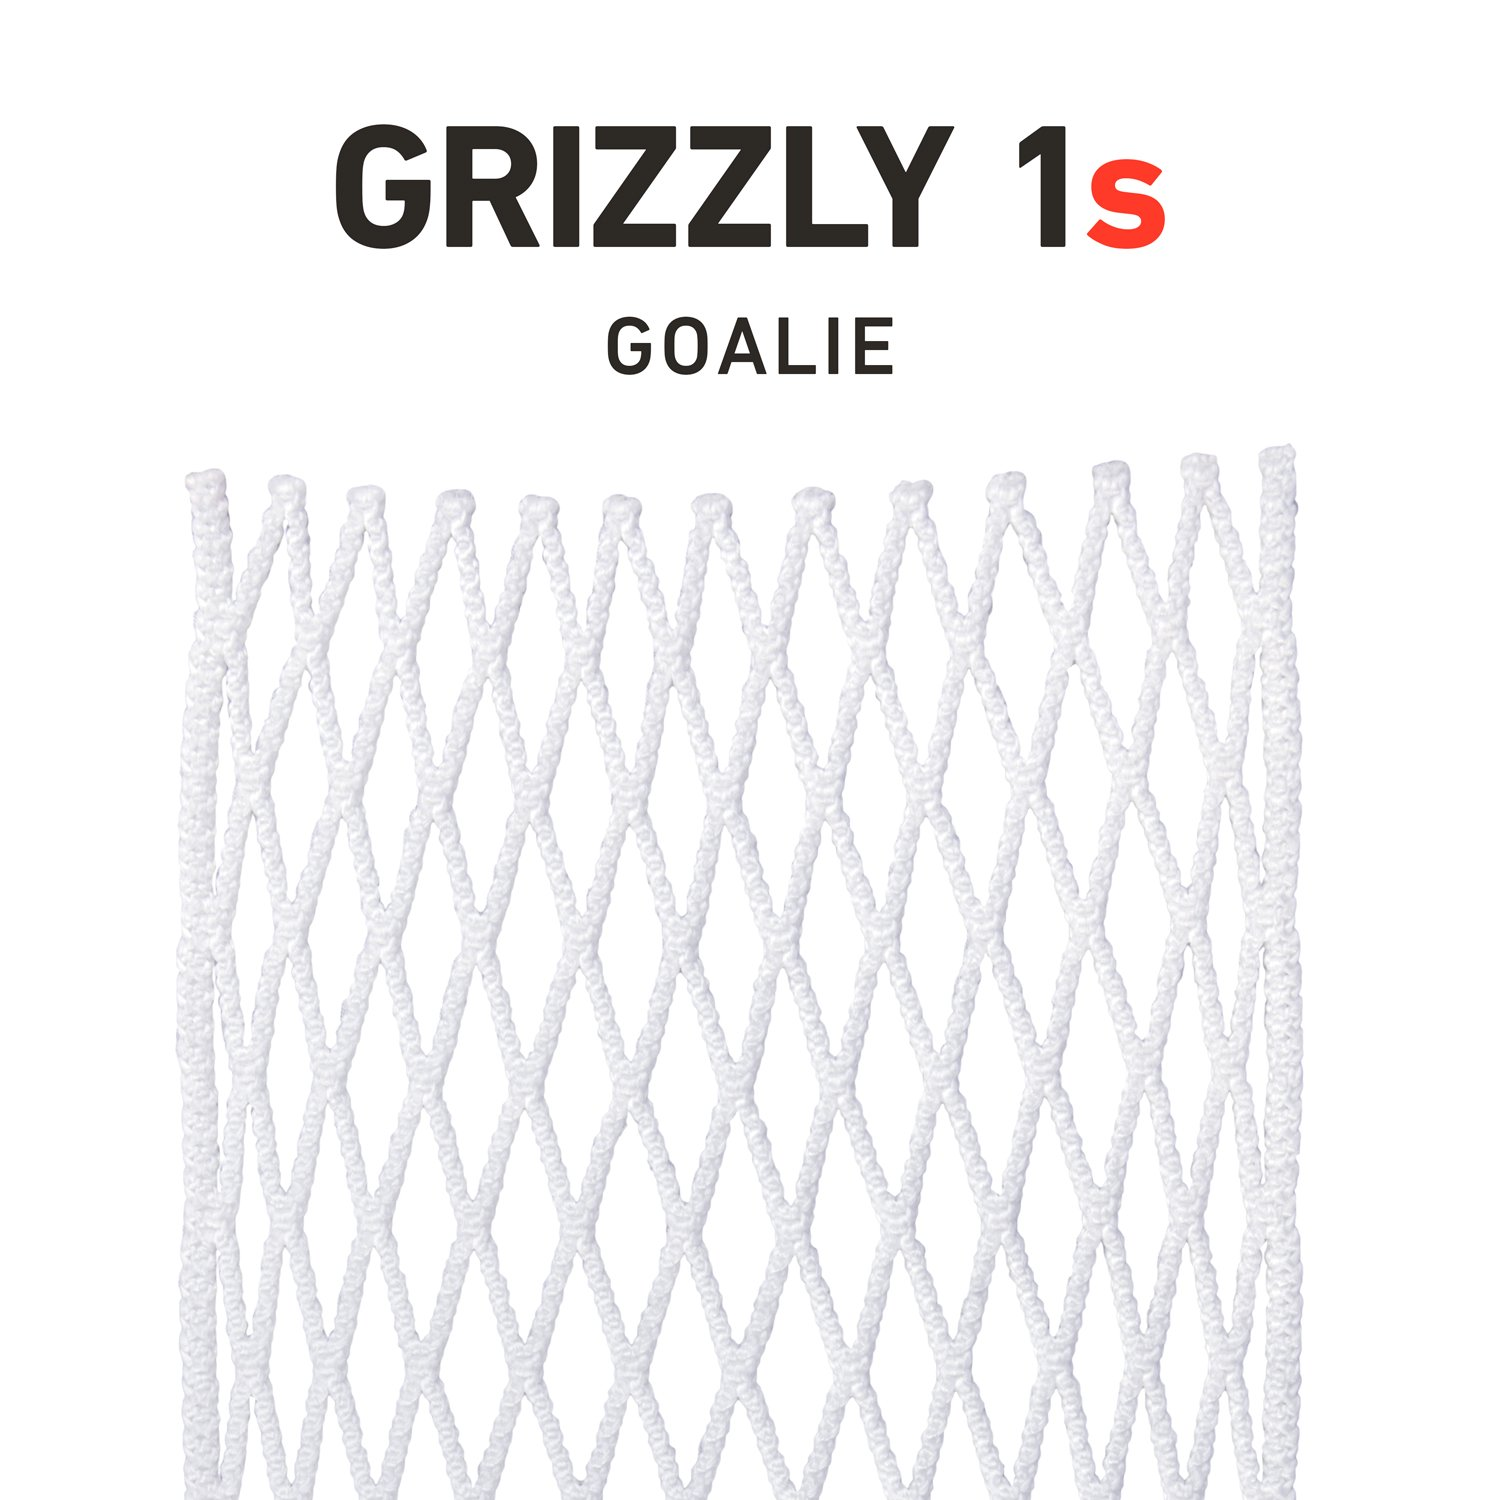 String King Grizzly 1s Semi-Soft Goalie Lacrosse Mesh Piece